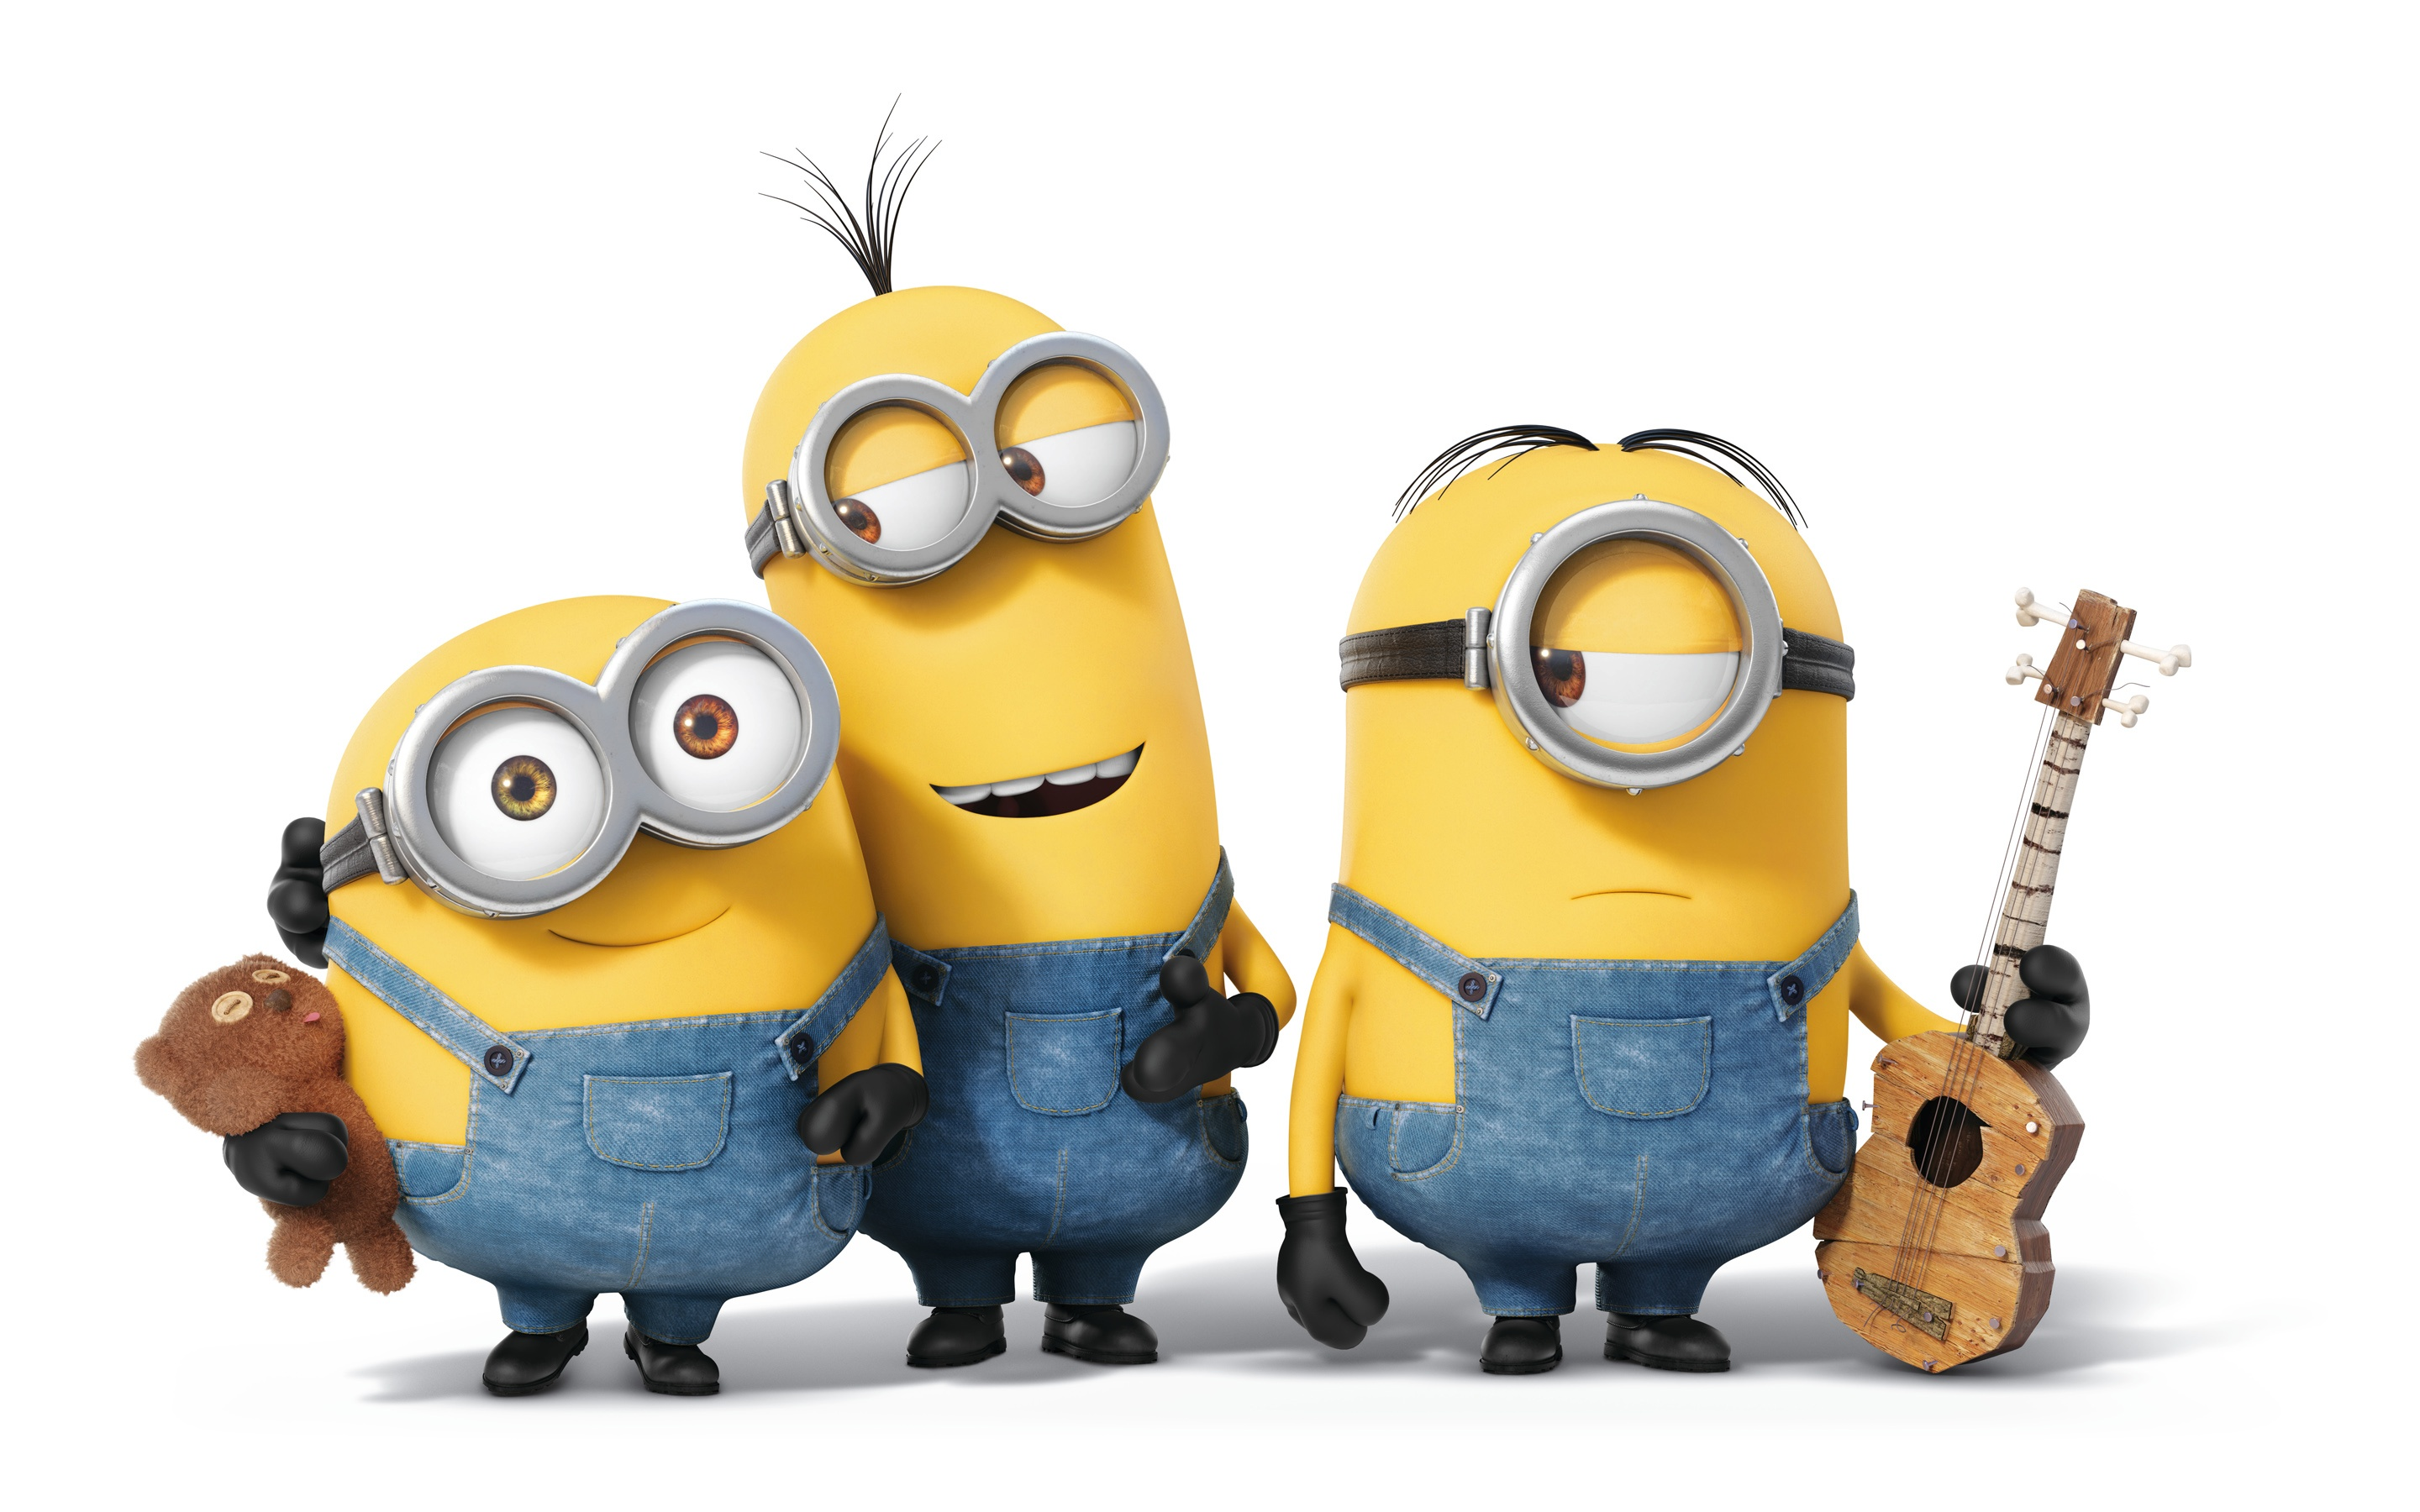 Free: minions digital download code other dvds & movies listia.